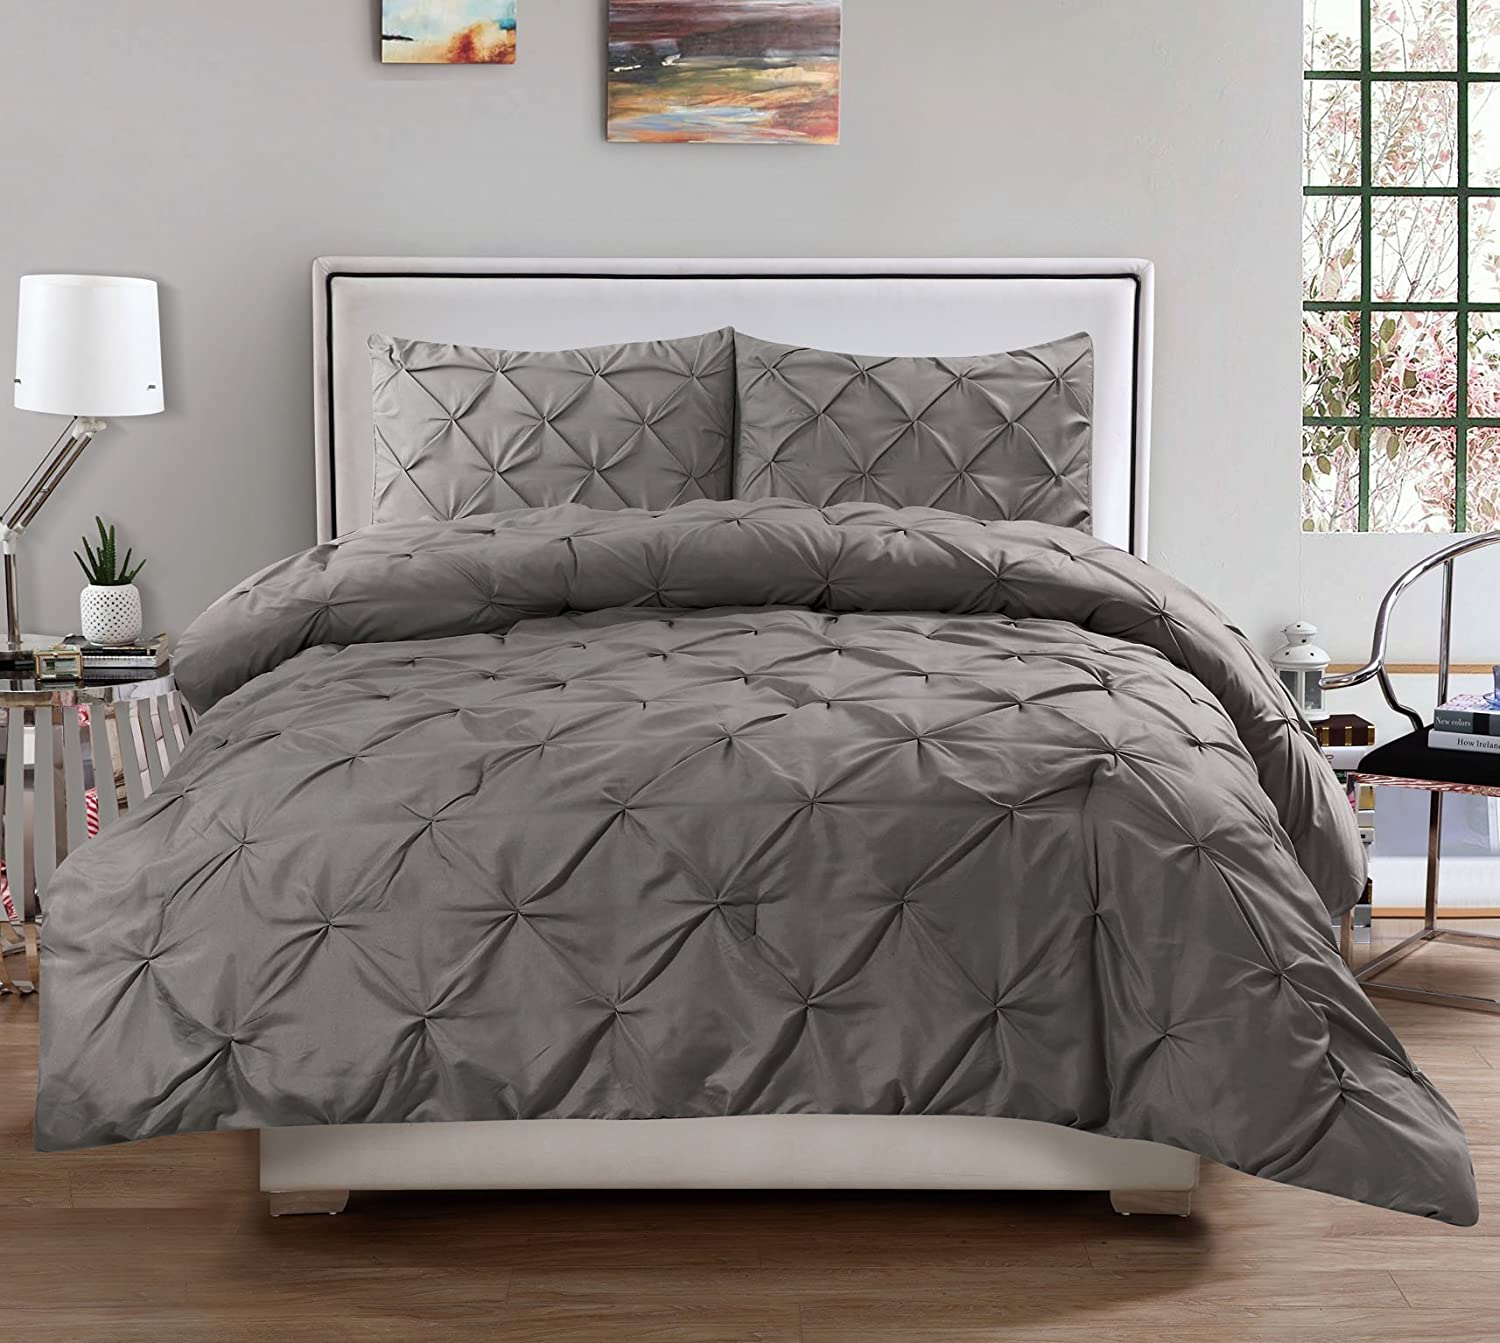 black needle style with lovely of double size geometric full bedding corell white stitching ease piece u sets in set comfy amazoncom durable bed bag pixels comforter pinch pleat walmartcom